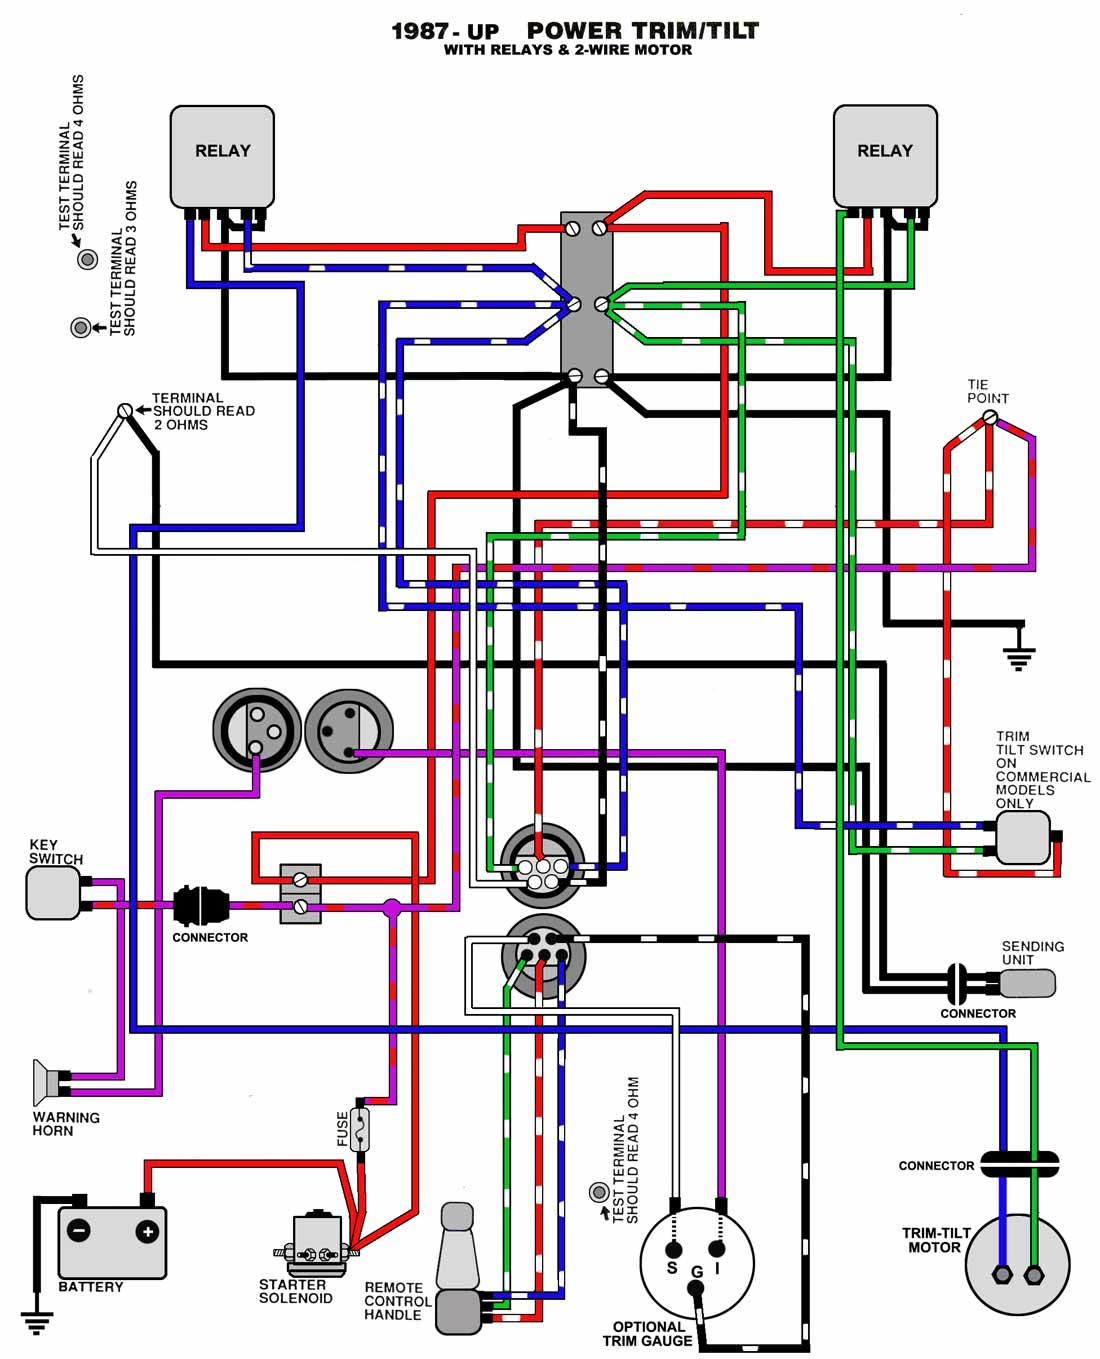 common outboard motor trim and tilt system wiring diagramstrim \u0026 tilt 1987 up